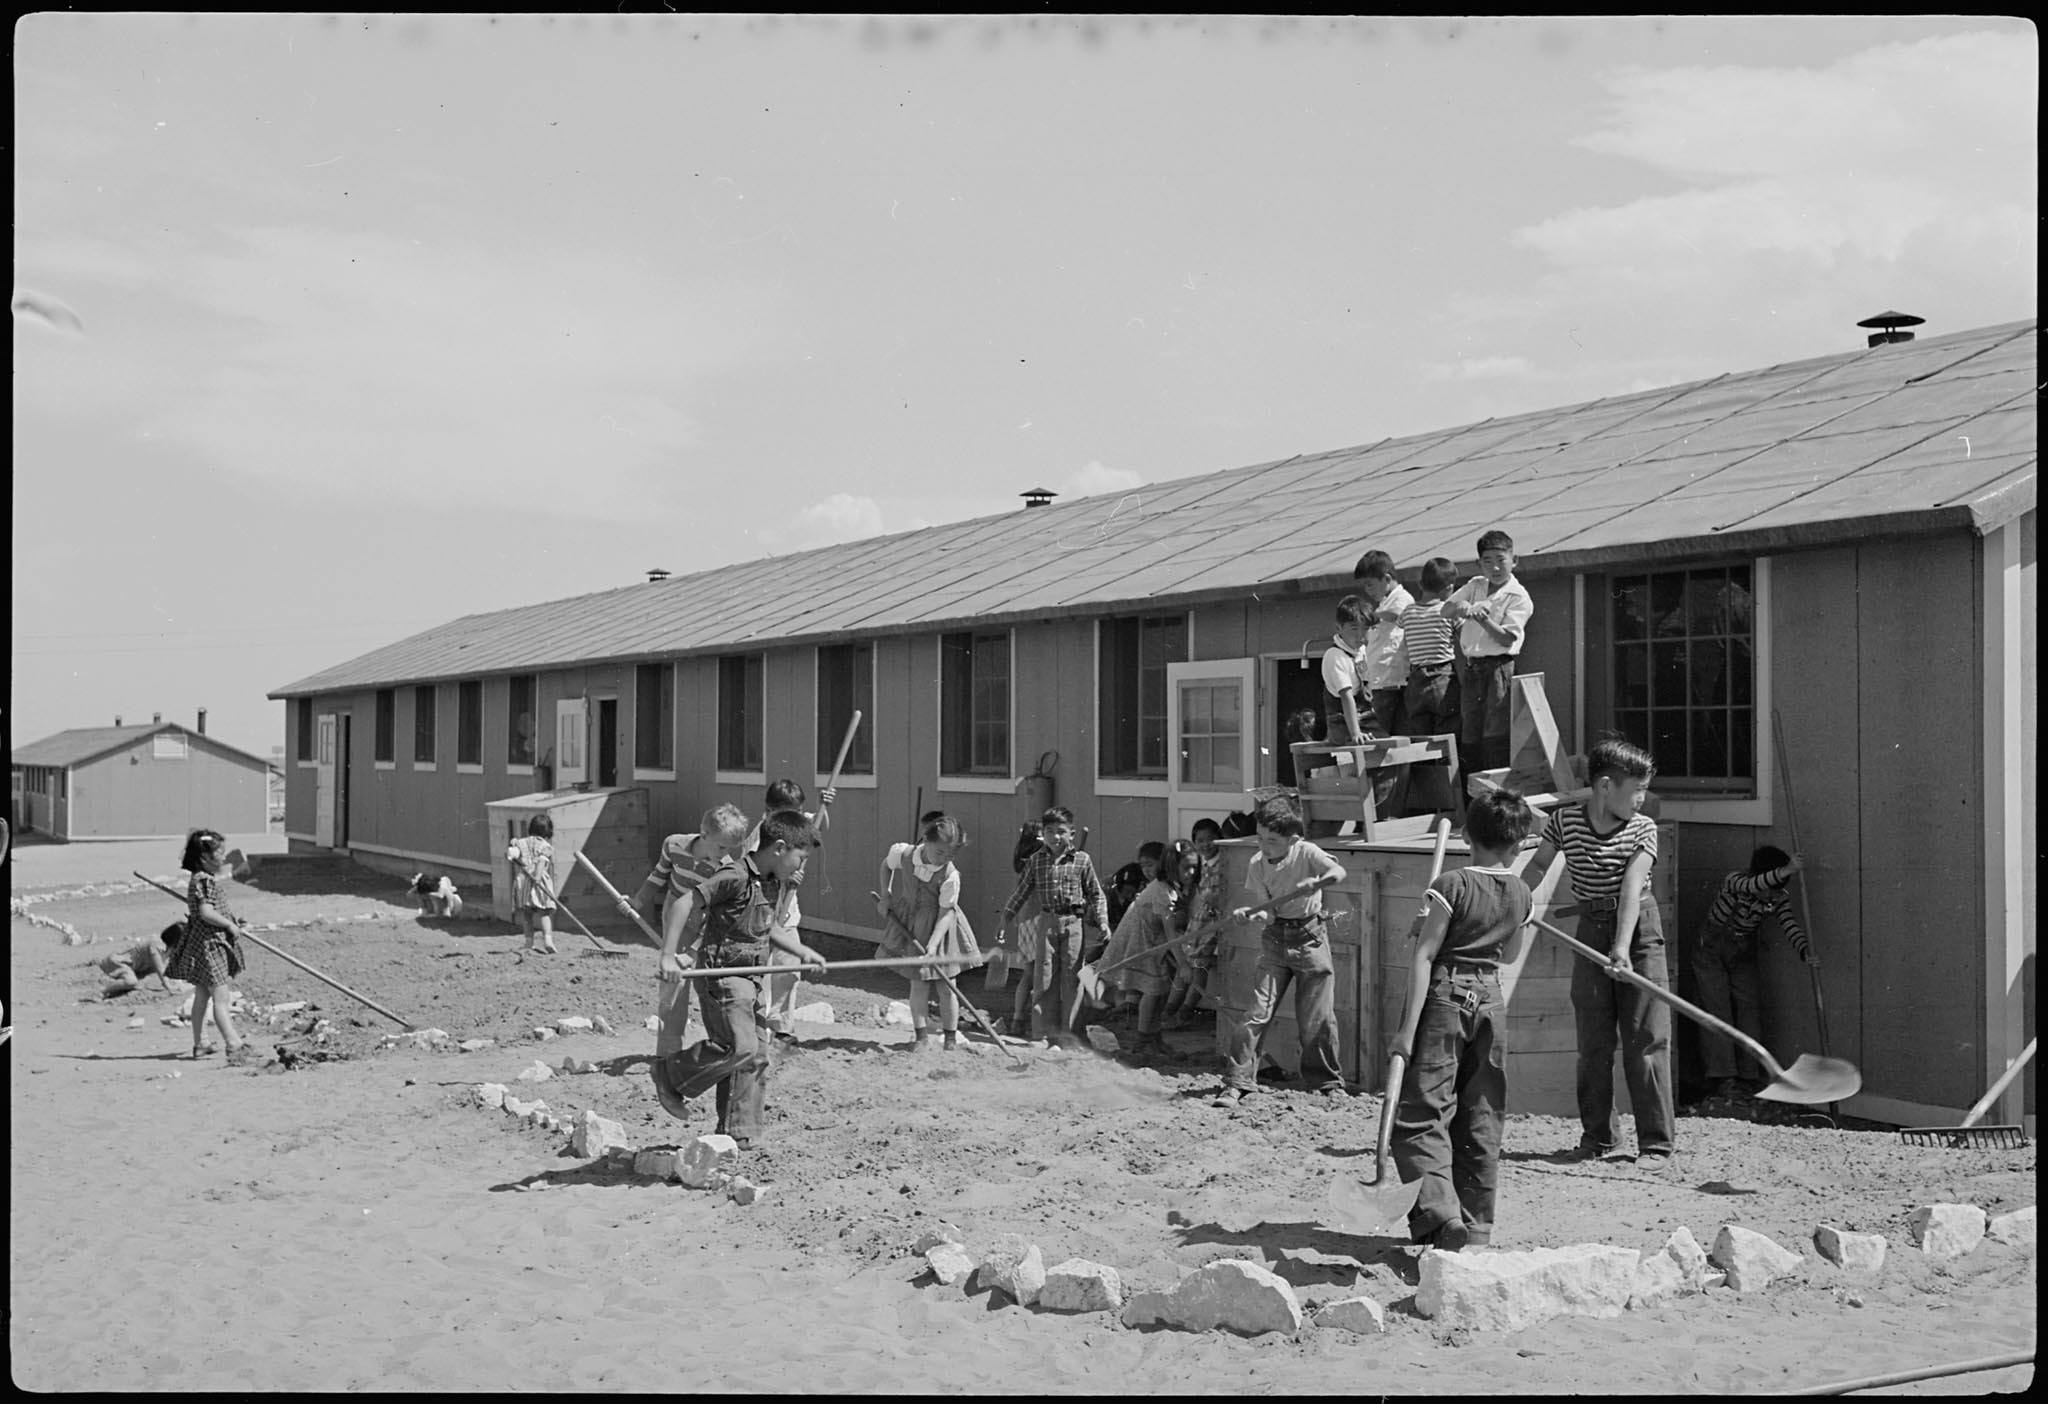 Young children working in the World War II Japanese internment camps